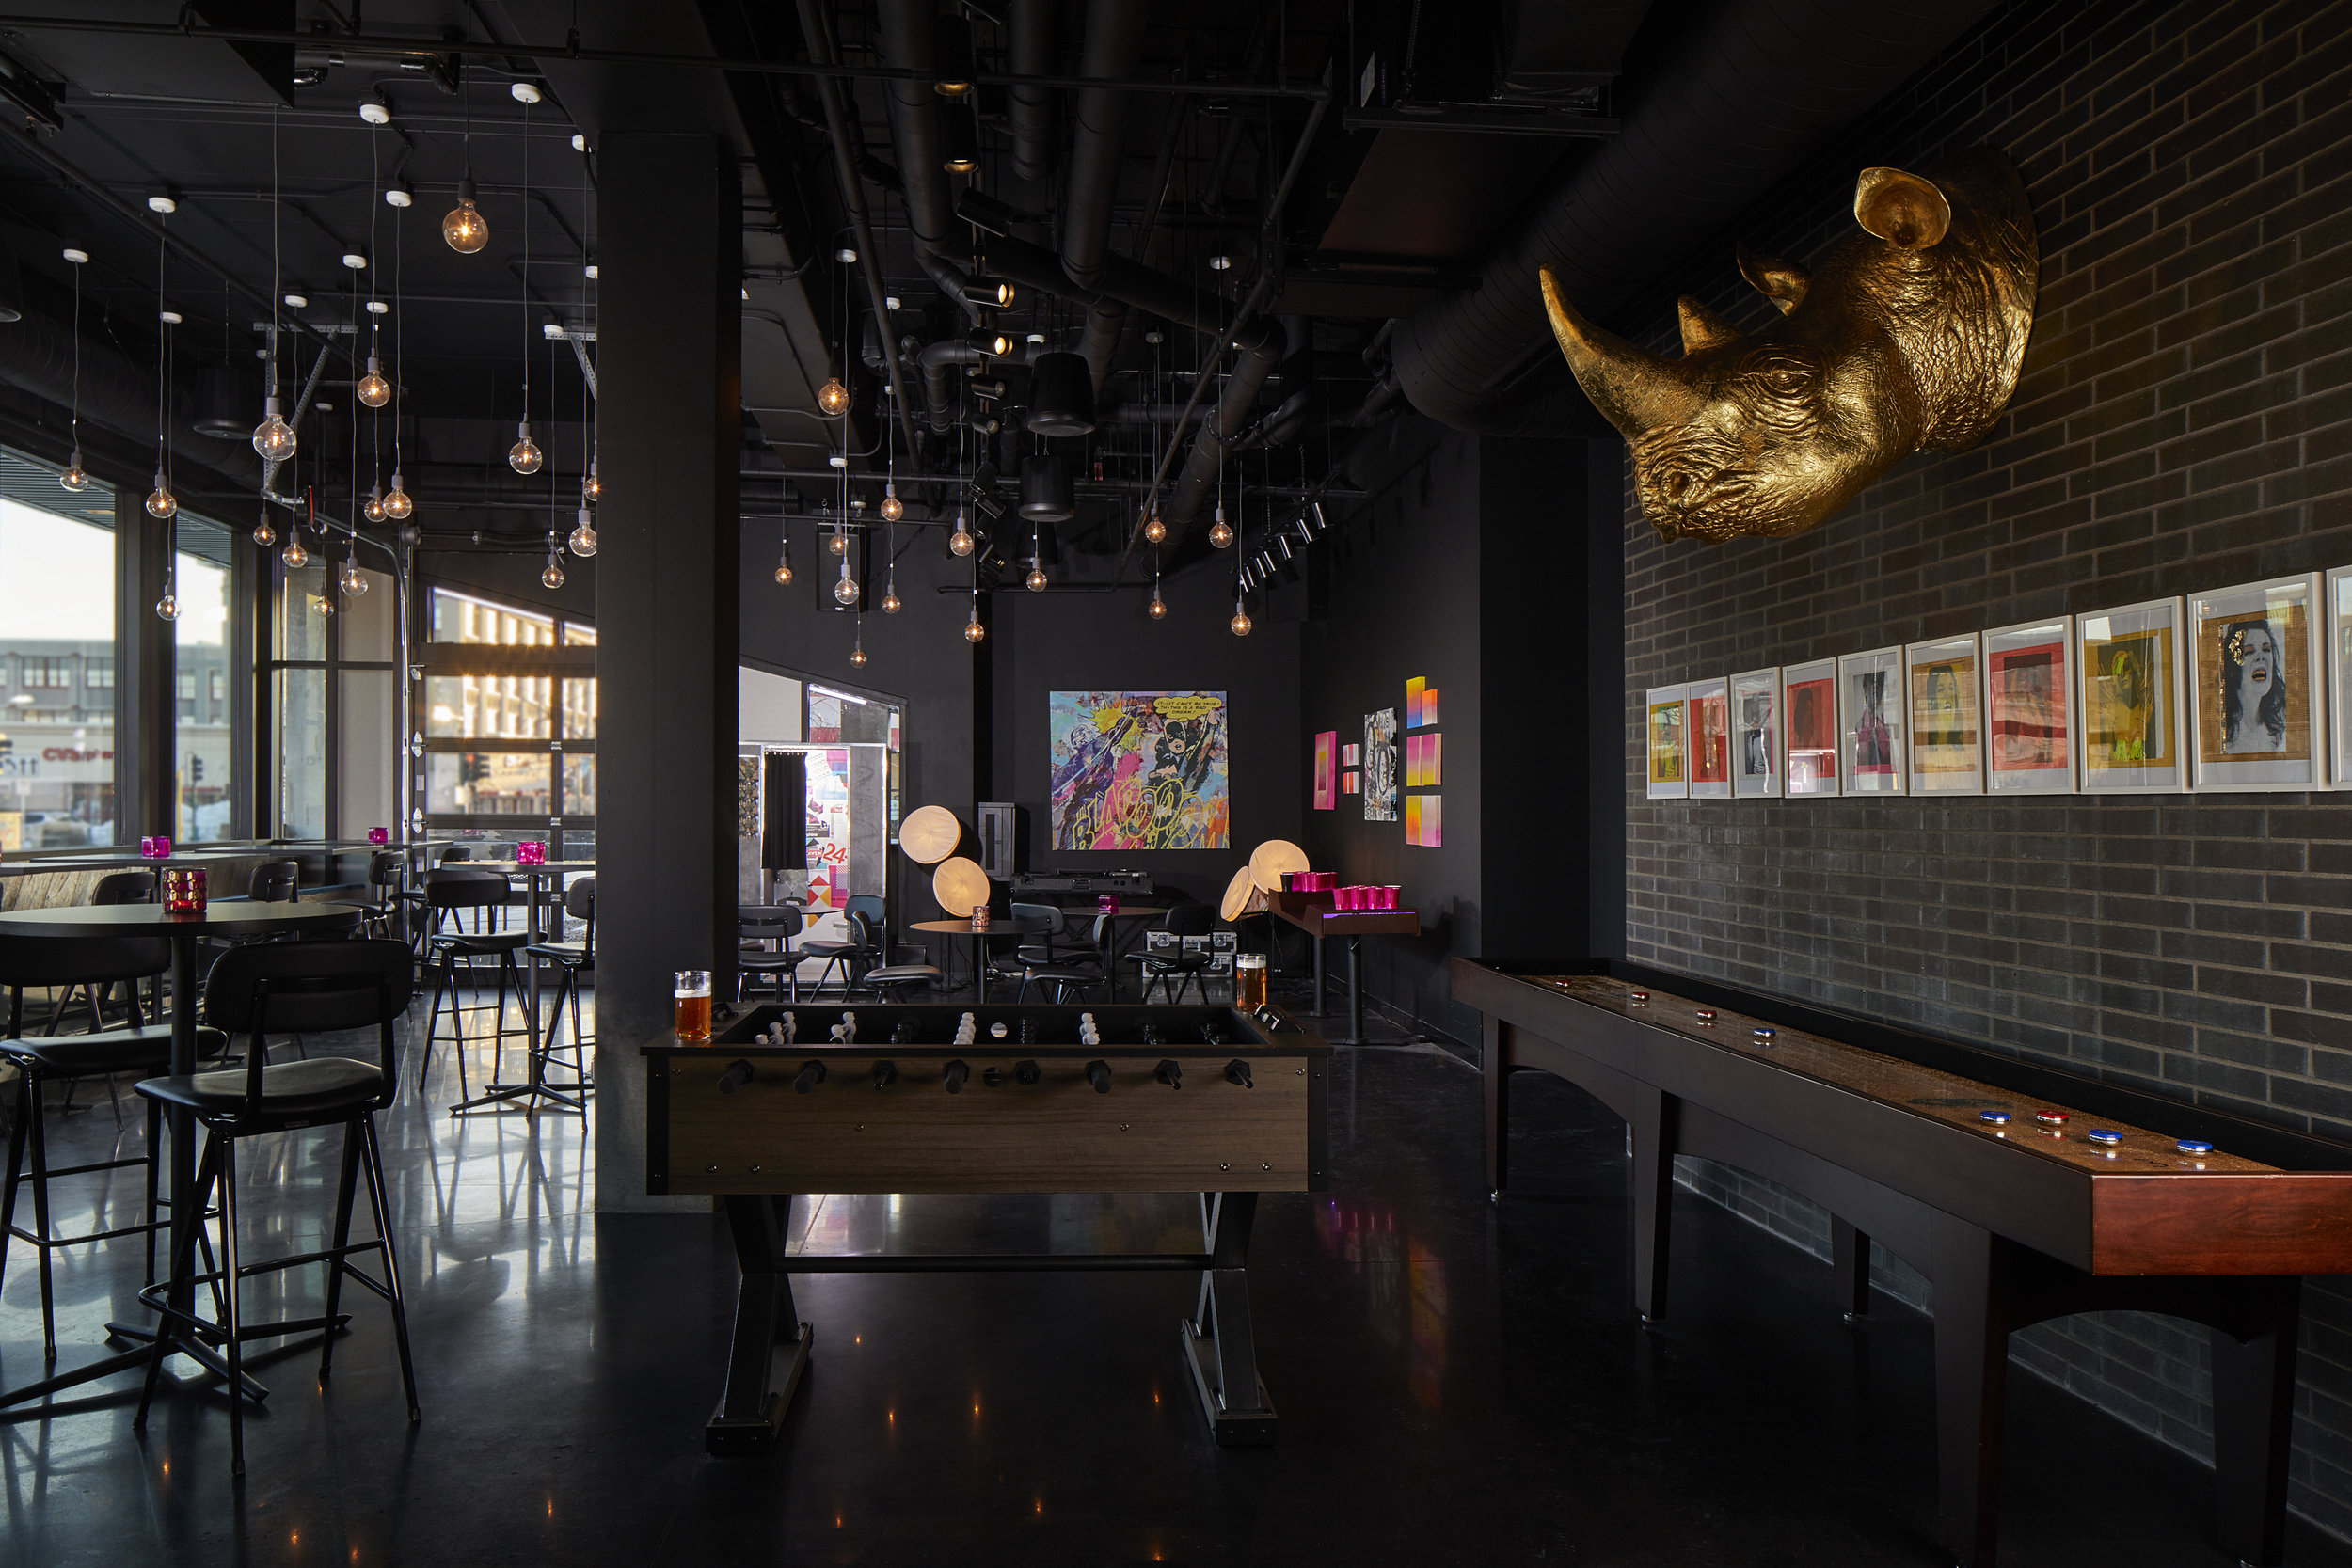 Moxy Minneapolis Uptown - Explore the brand-new Moxy Minneapolis Uptown, a hotel inspired by Minneapolis' unique culture. In partnership with the SooVAC, artwork by local artists is on display, including murals and graffiti throughout the hotel. It has all the comforts of your living room with the exciting action of a backstage pass.